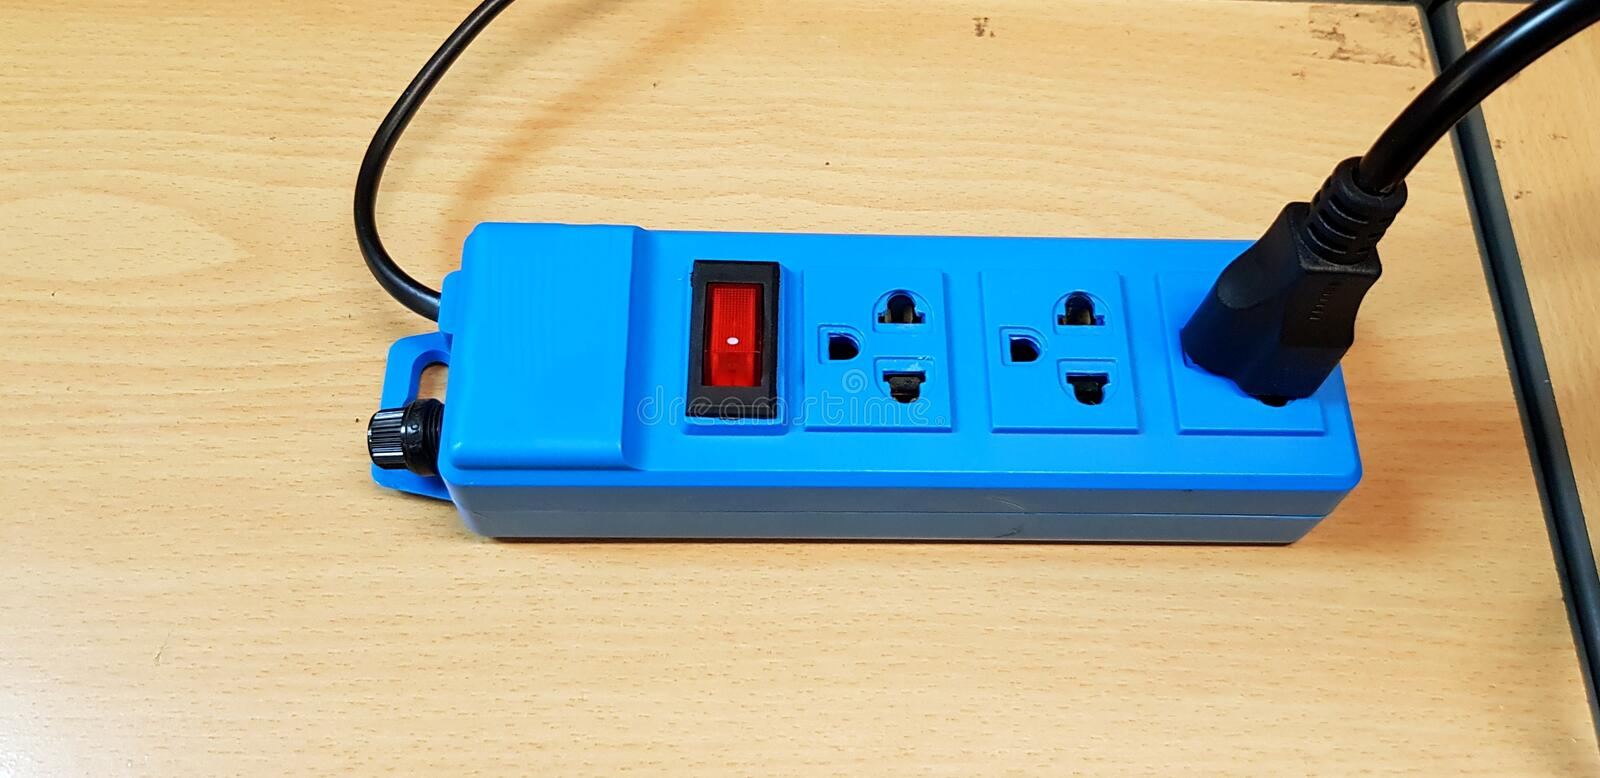 Blue AC outlet with red button or switch on or off and black power cord cable connect stock images